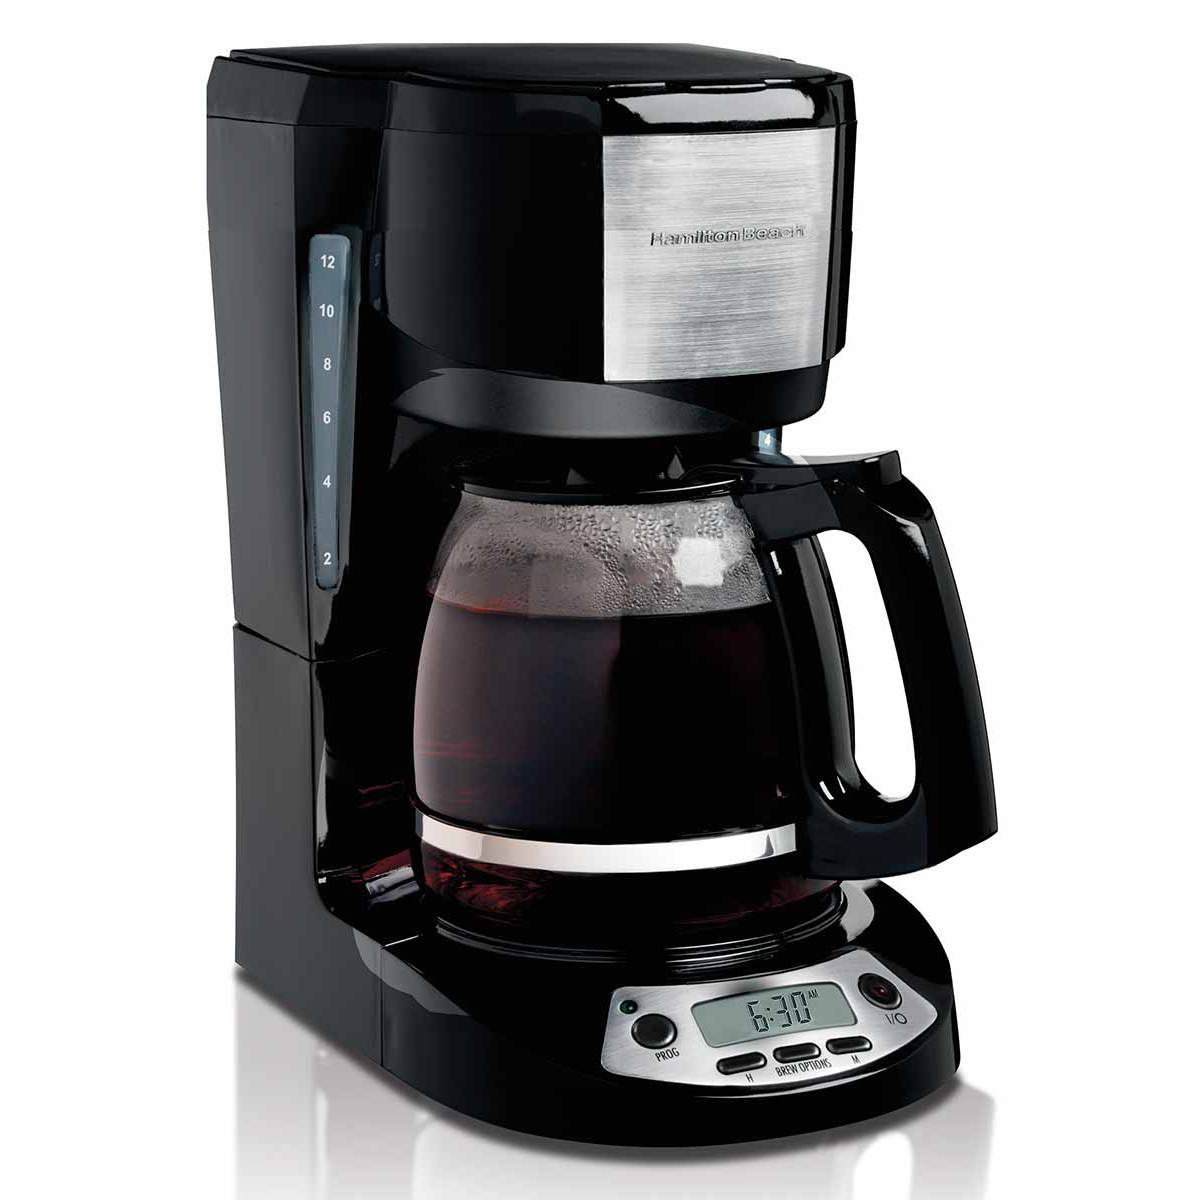 Hamilton Beach Coffee Maker 12 Cup Programmable With 3